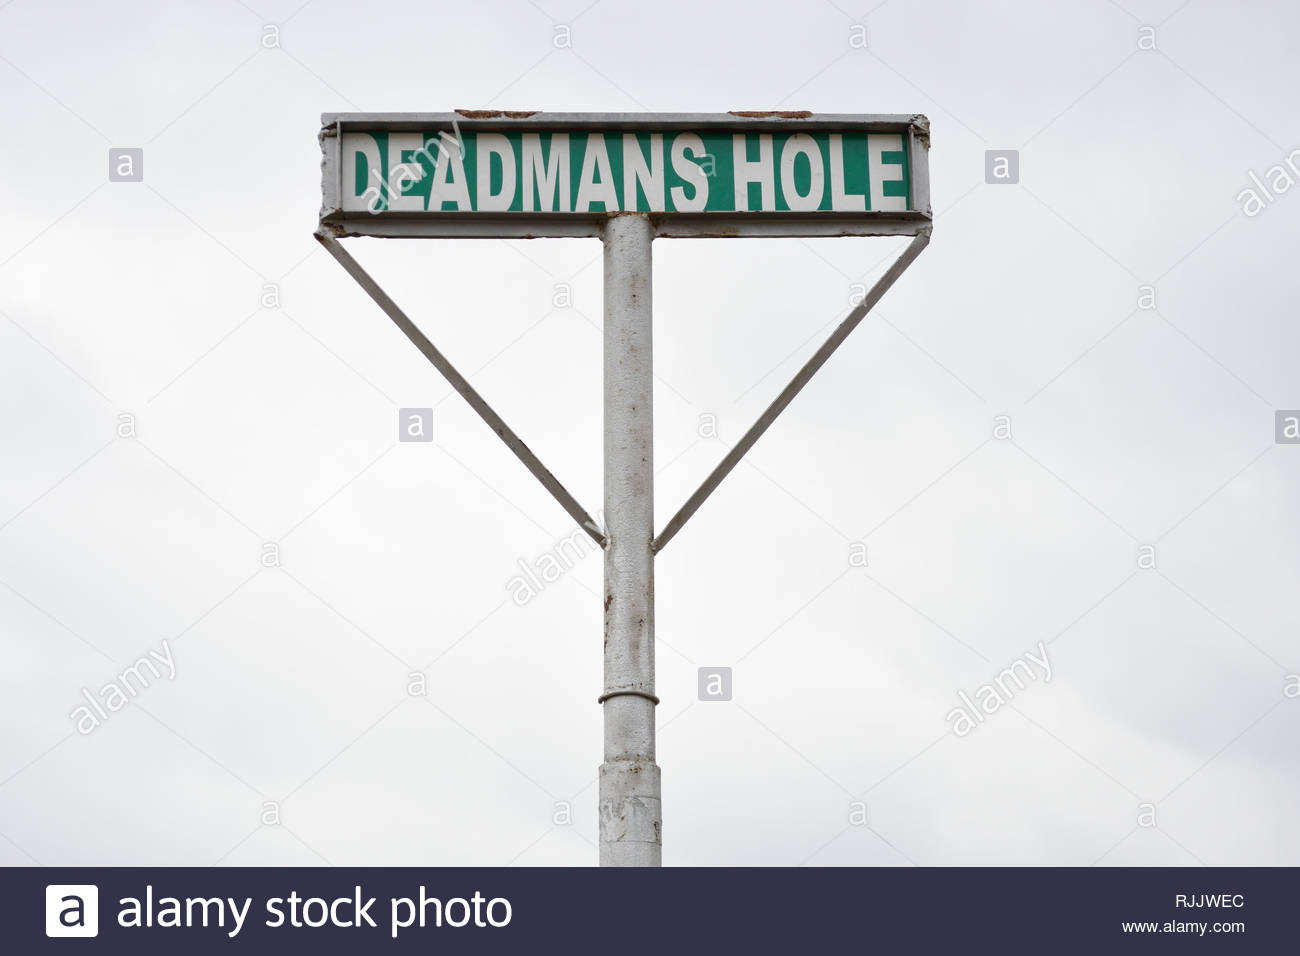 Deadmans Hole Sign. Sign for Deadmans Hole or Dead Mans Hole near Marble Falls Texas. Dead Mans Hole Texas Hill Country. Road Name Sign. Road Sign TX - Stock Image